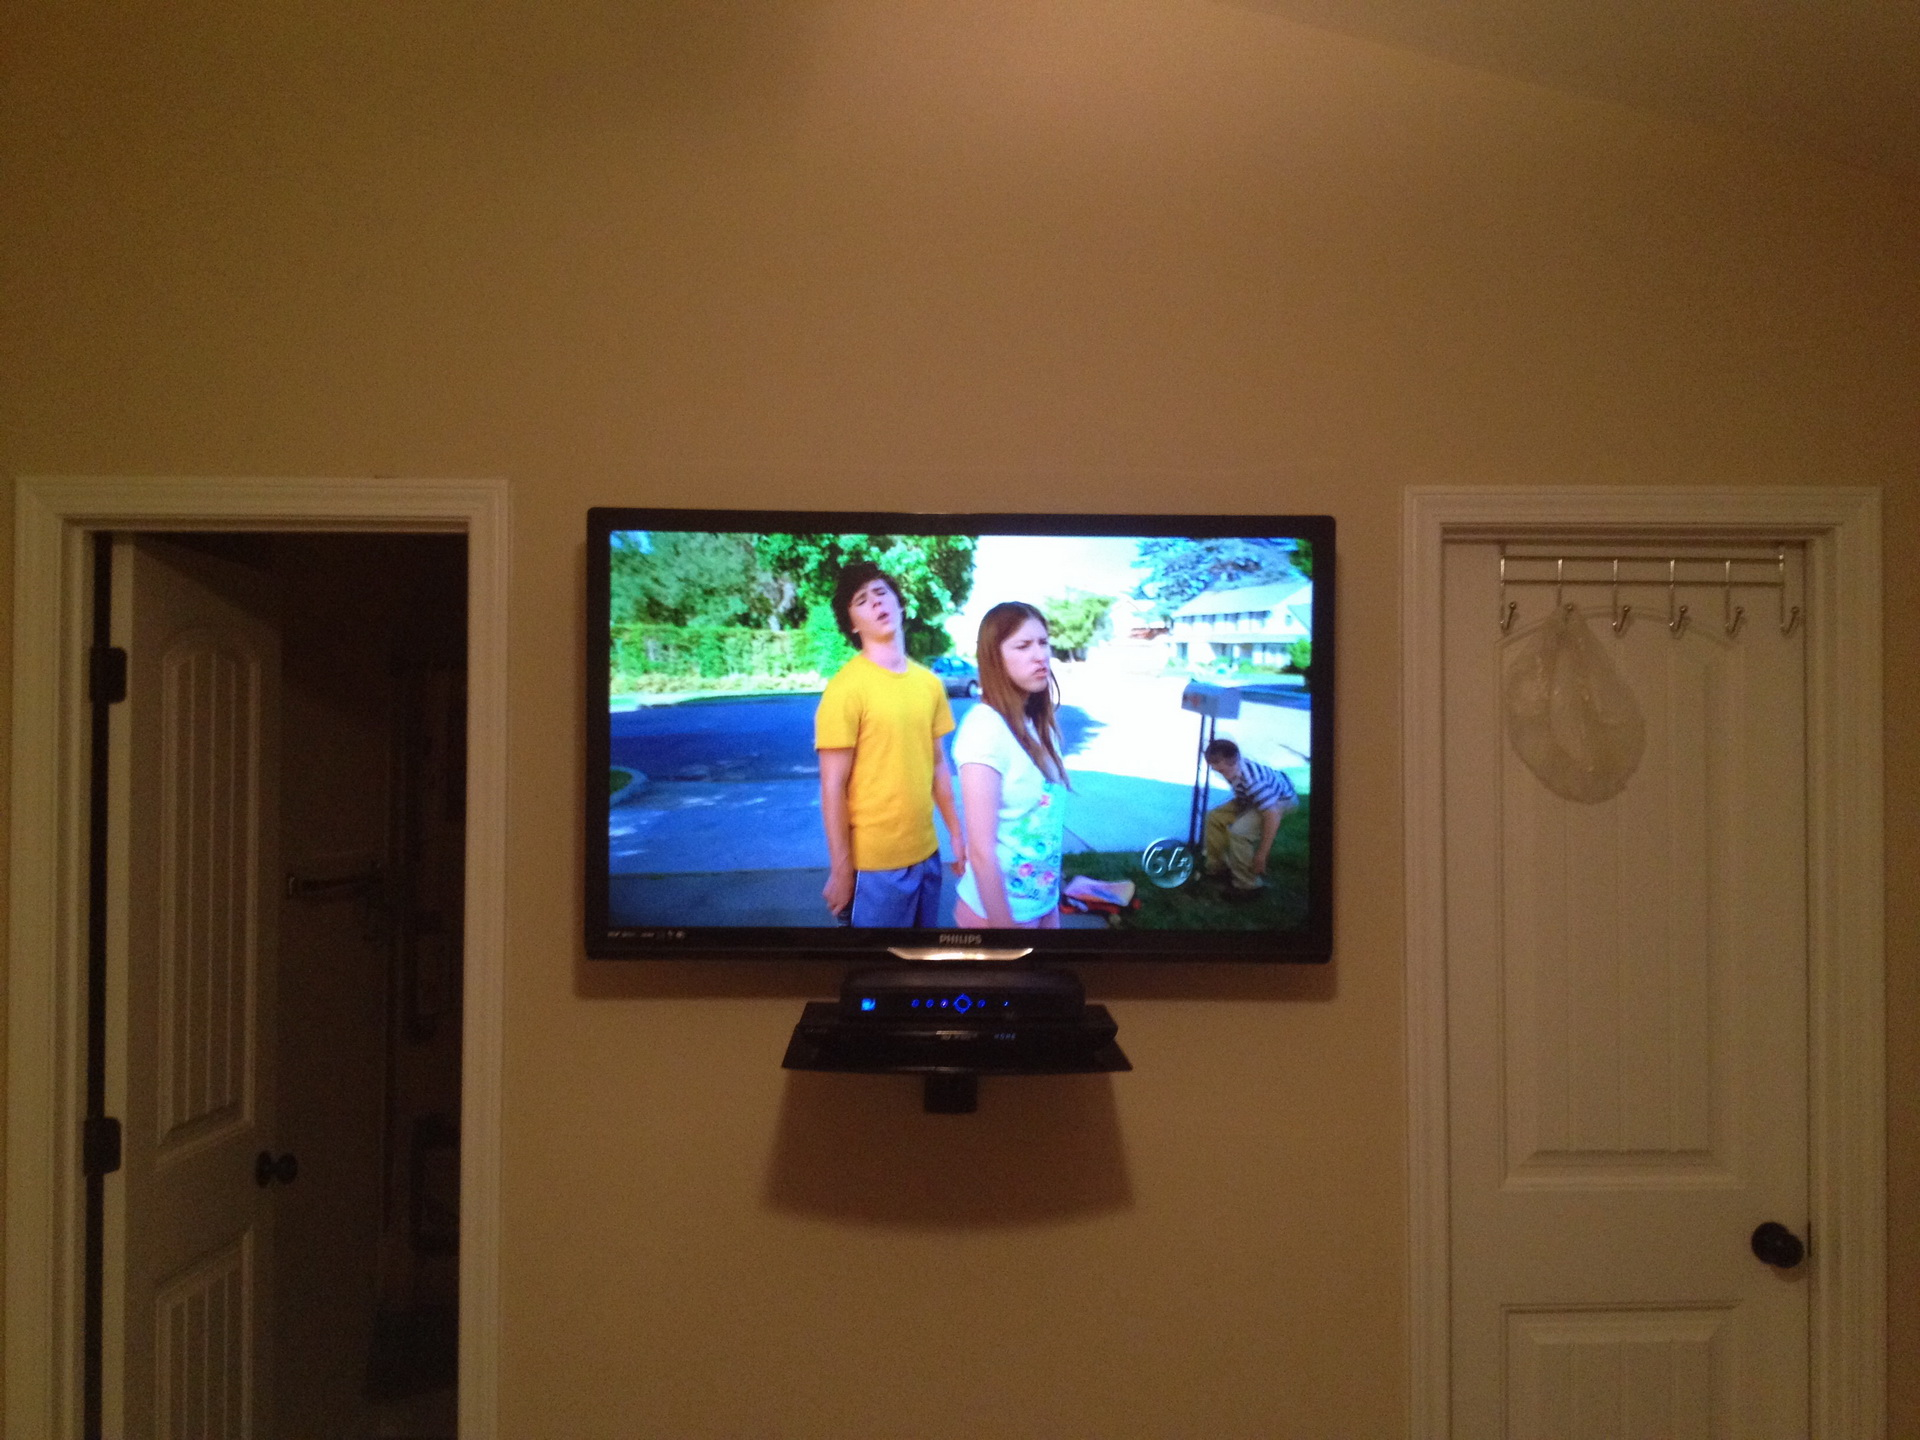 Wall mounted shelves for dvd player add balance - Wall mounted shelving ideas ...